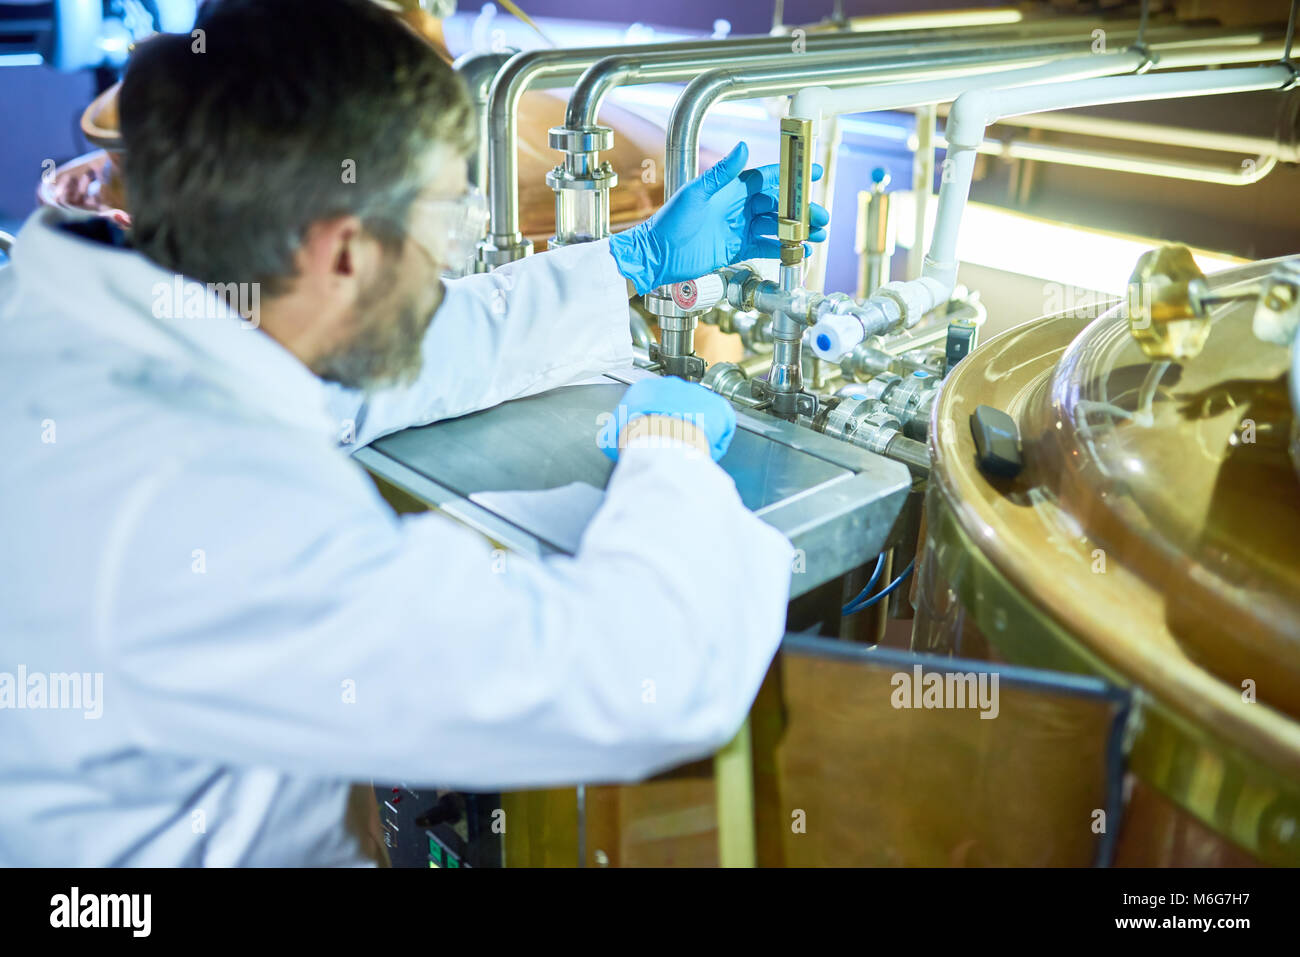 Bearded Technician Focused on Work - Stock Image